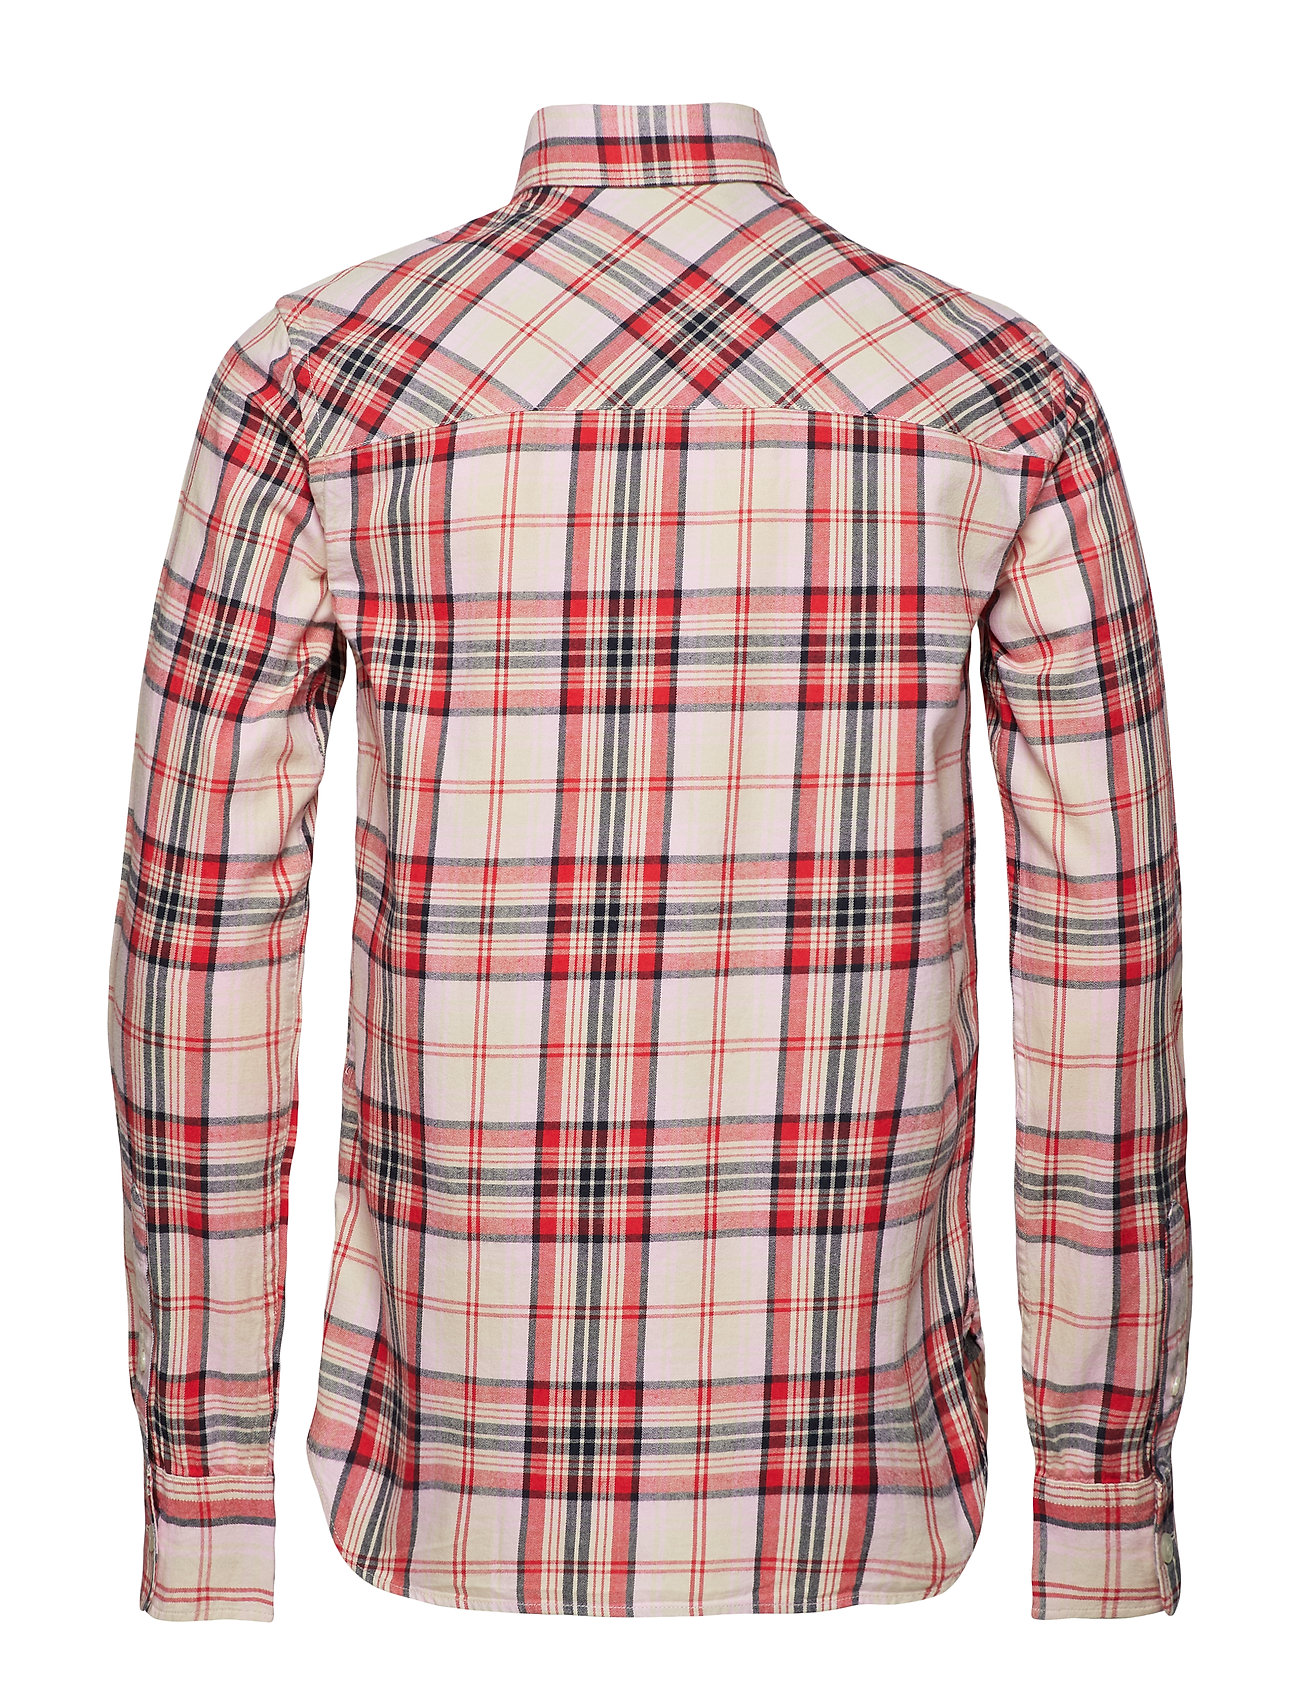 CScotchamp; Shirtcombo Checked Blauw Ams Soda Brushed Cotton Yb7y6fg